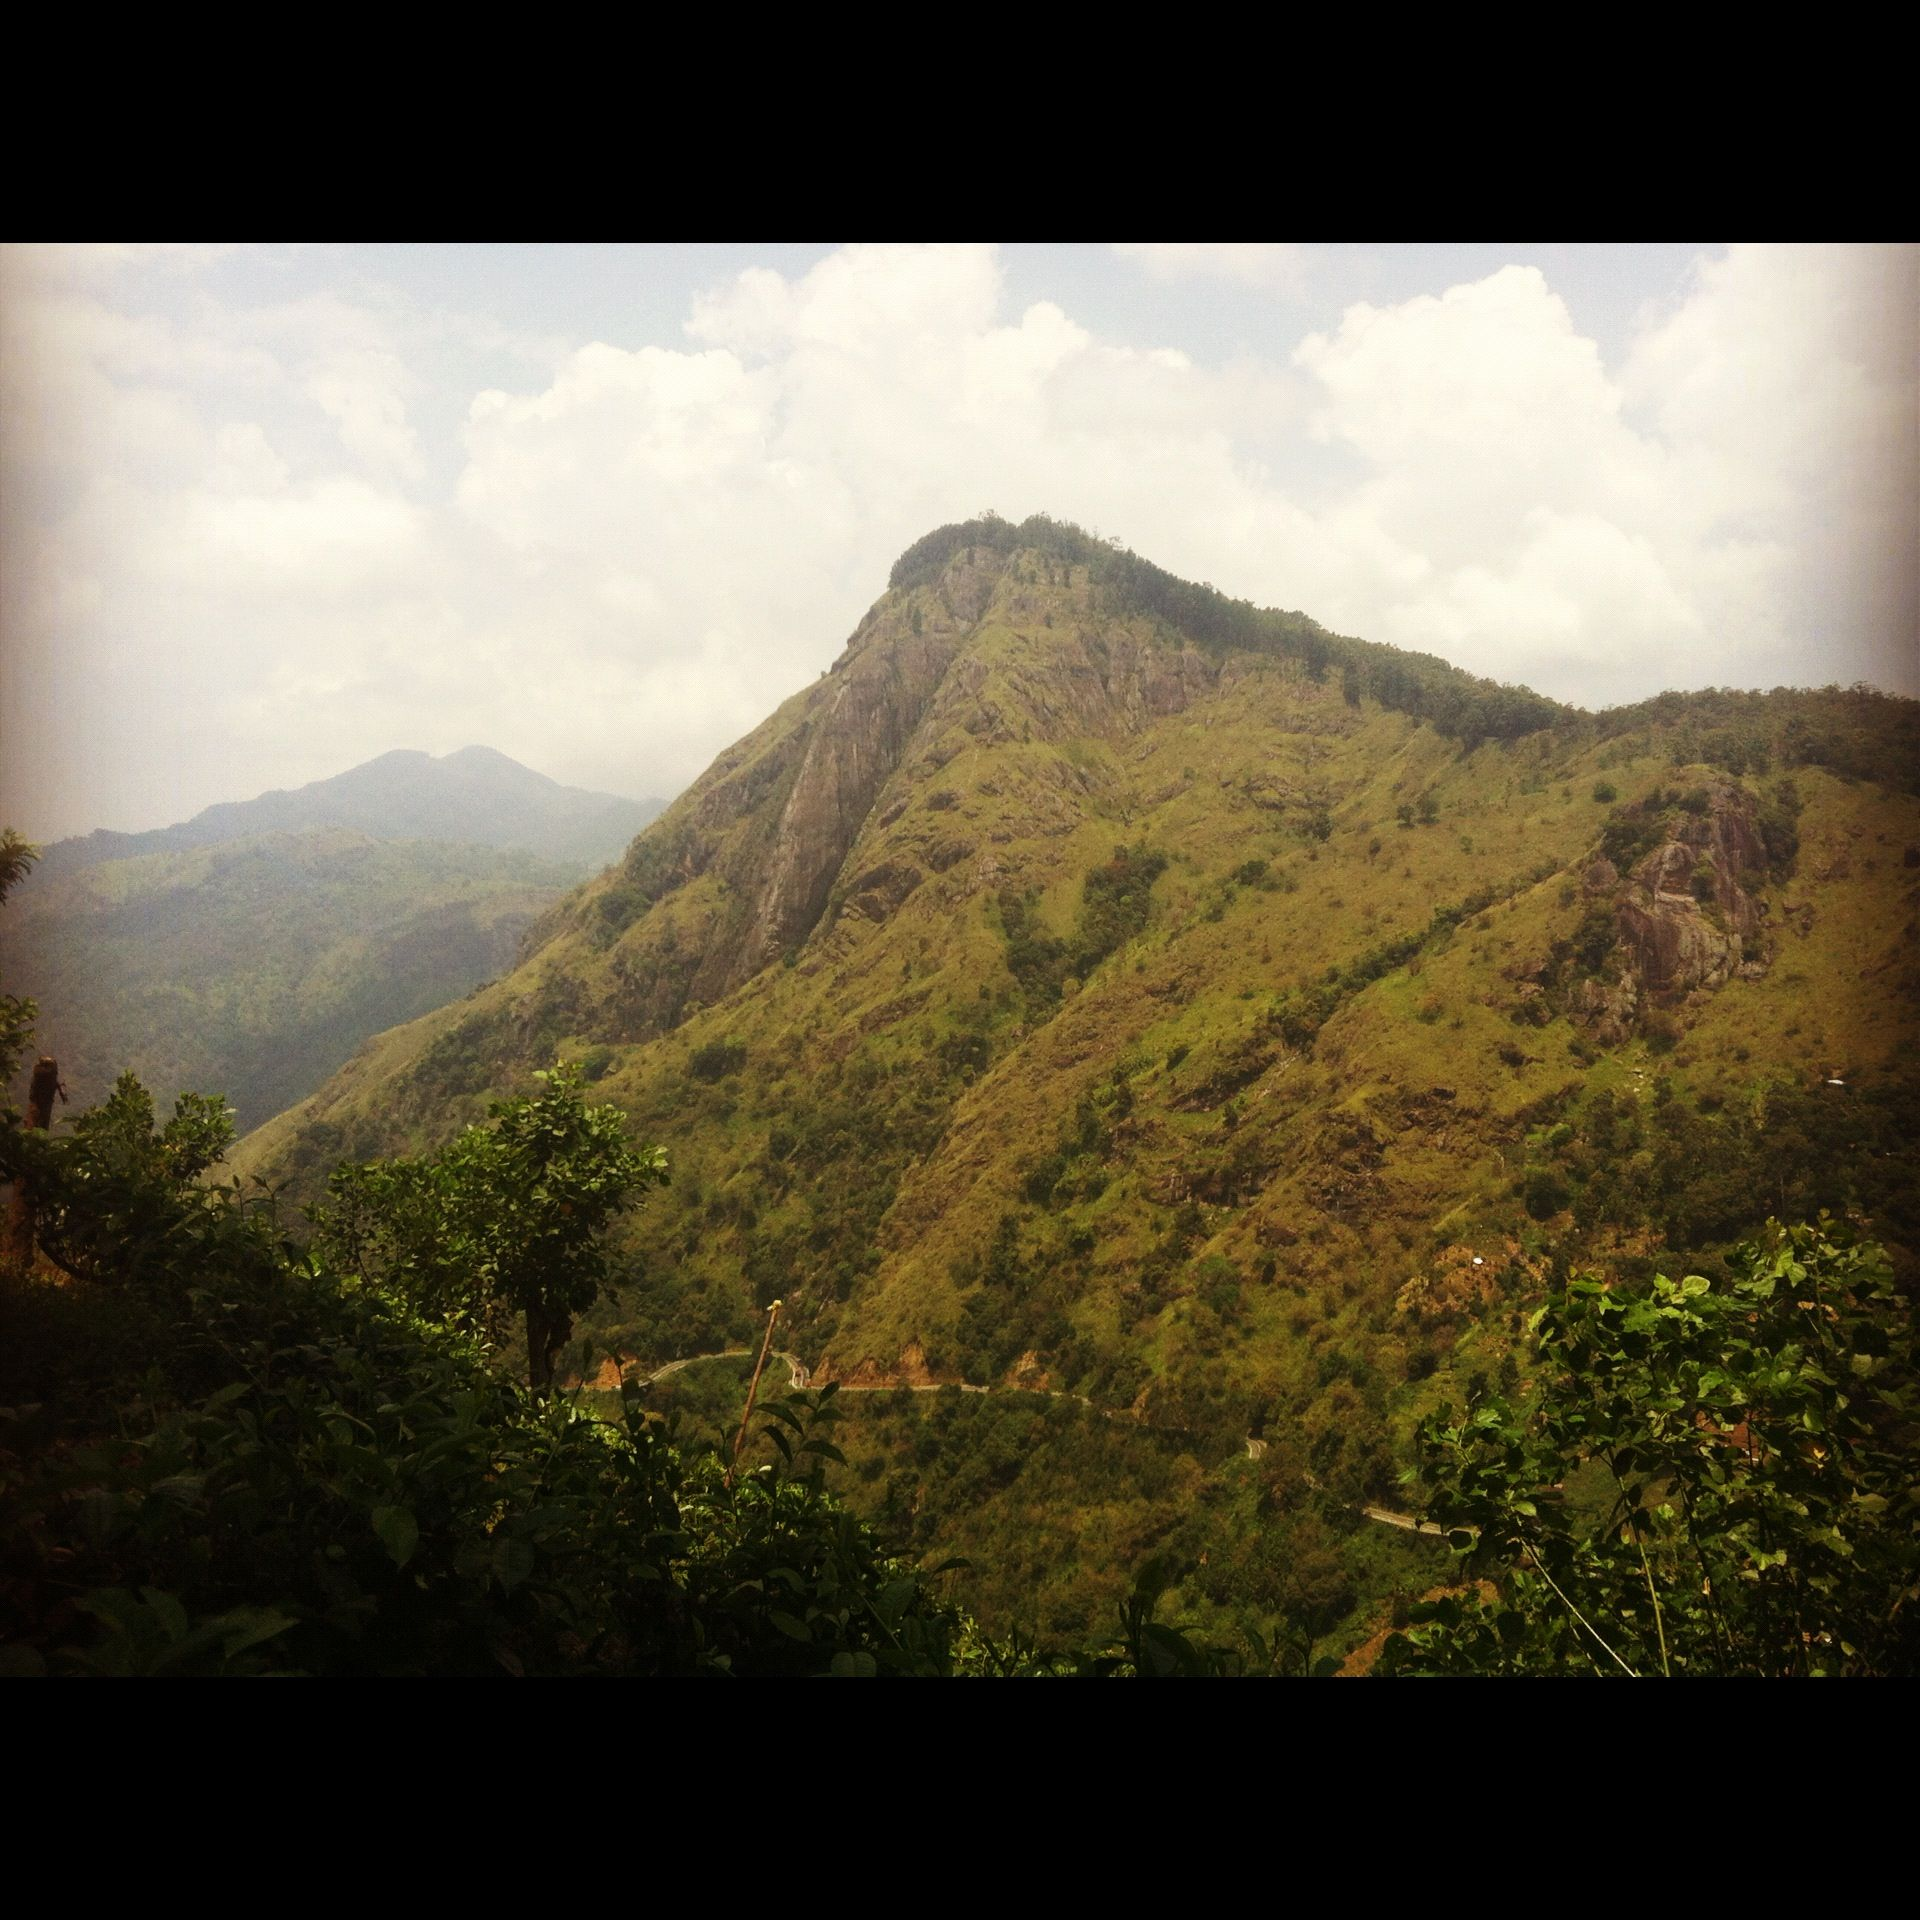 Hill Country. Sri Lanka